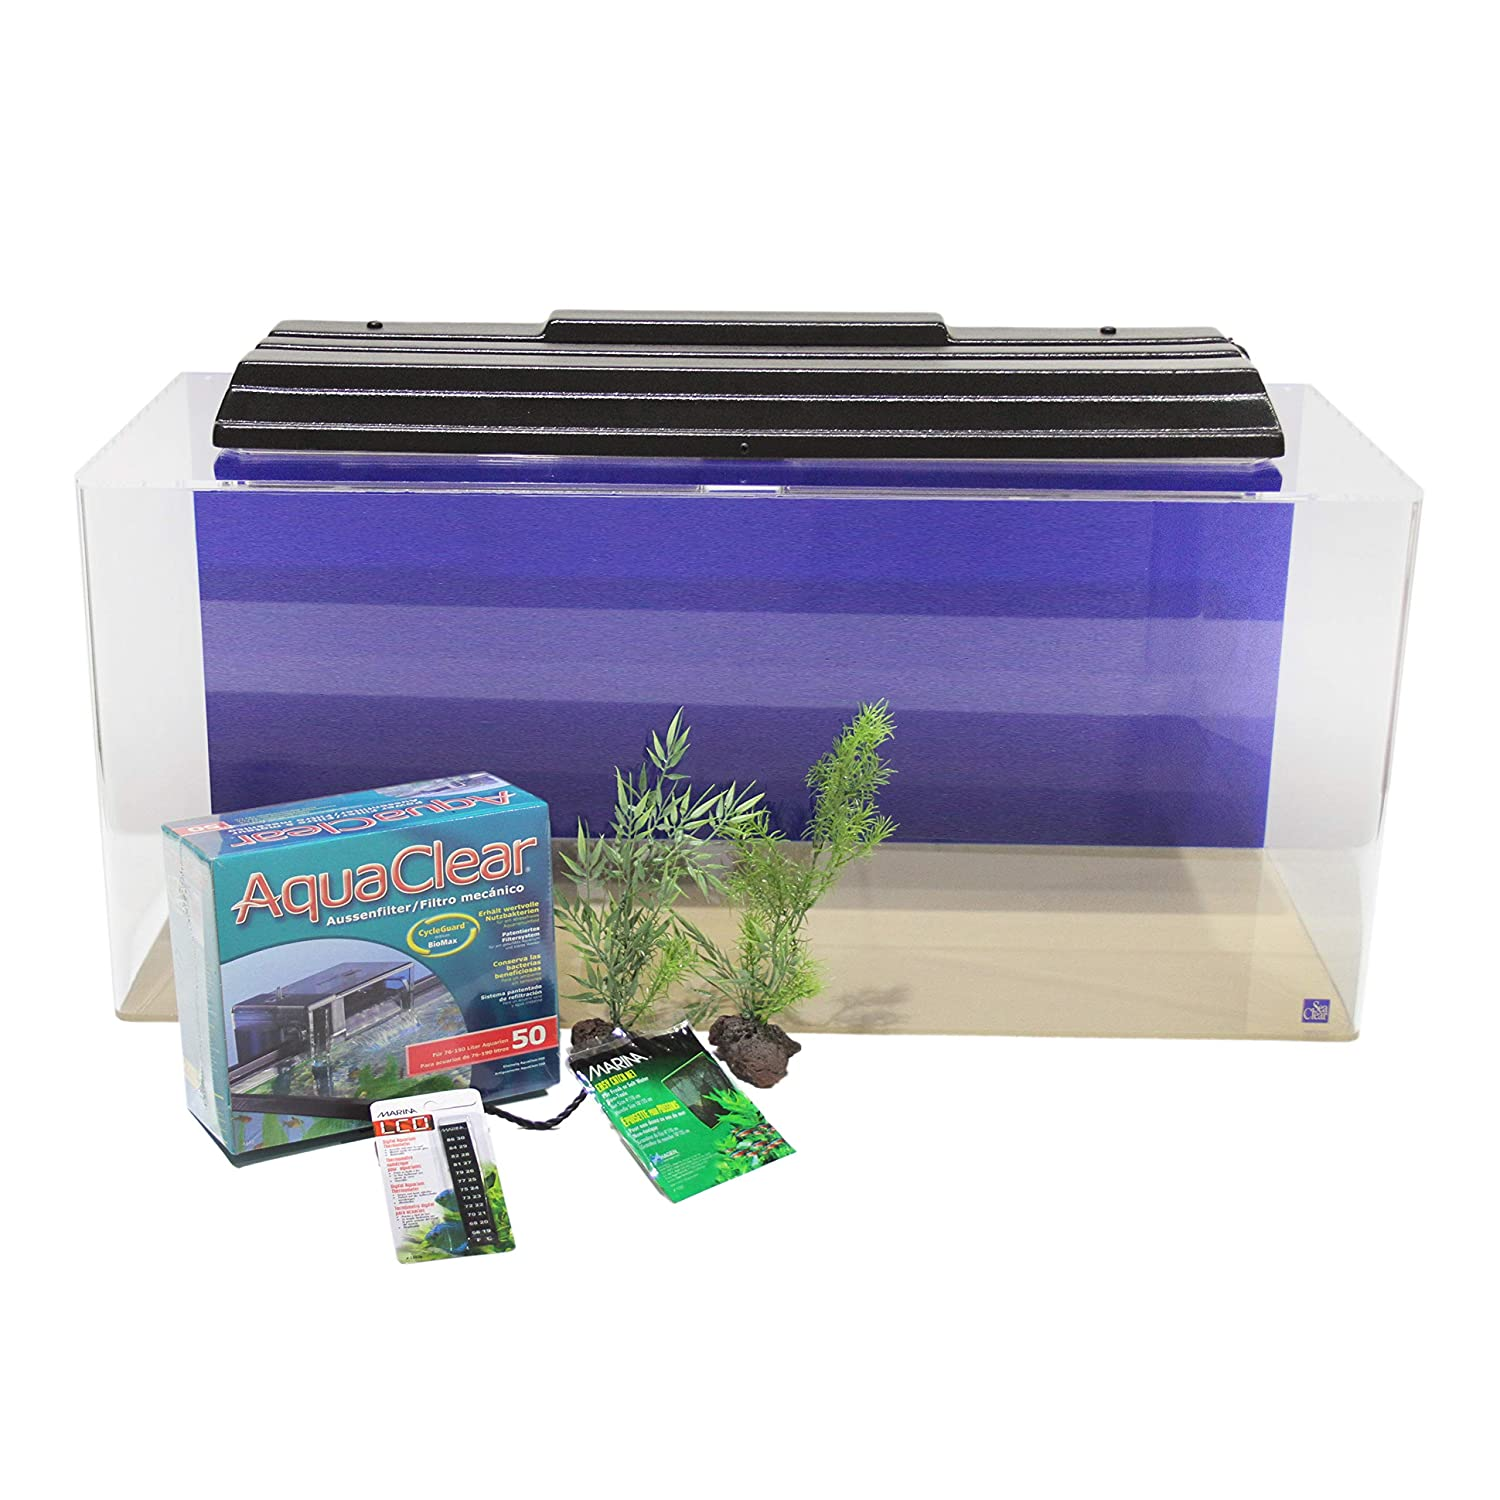 North American Pet Products 40 gallons Show Acrylic Aquarium Junior Executive Kit, 36 by 15 by 16-Inch, Cobalt bluee